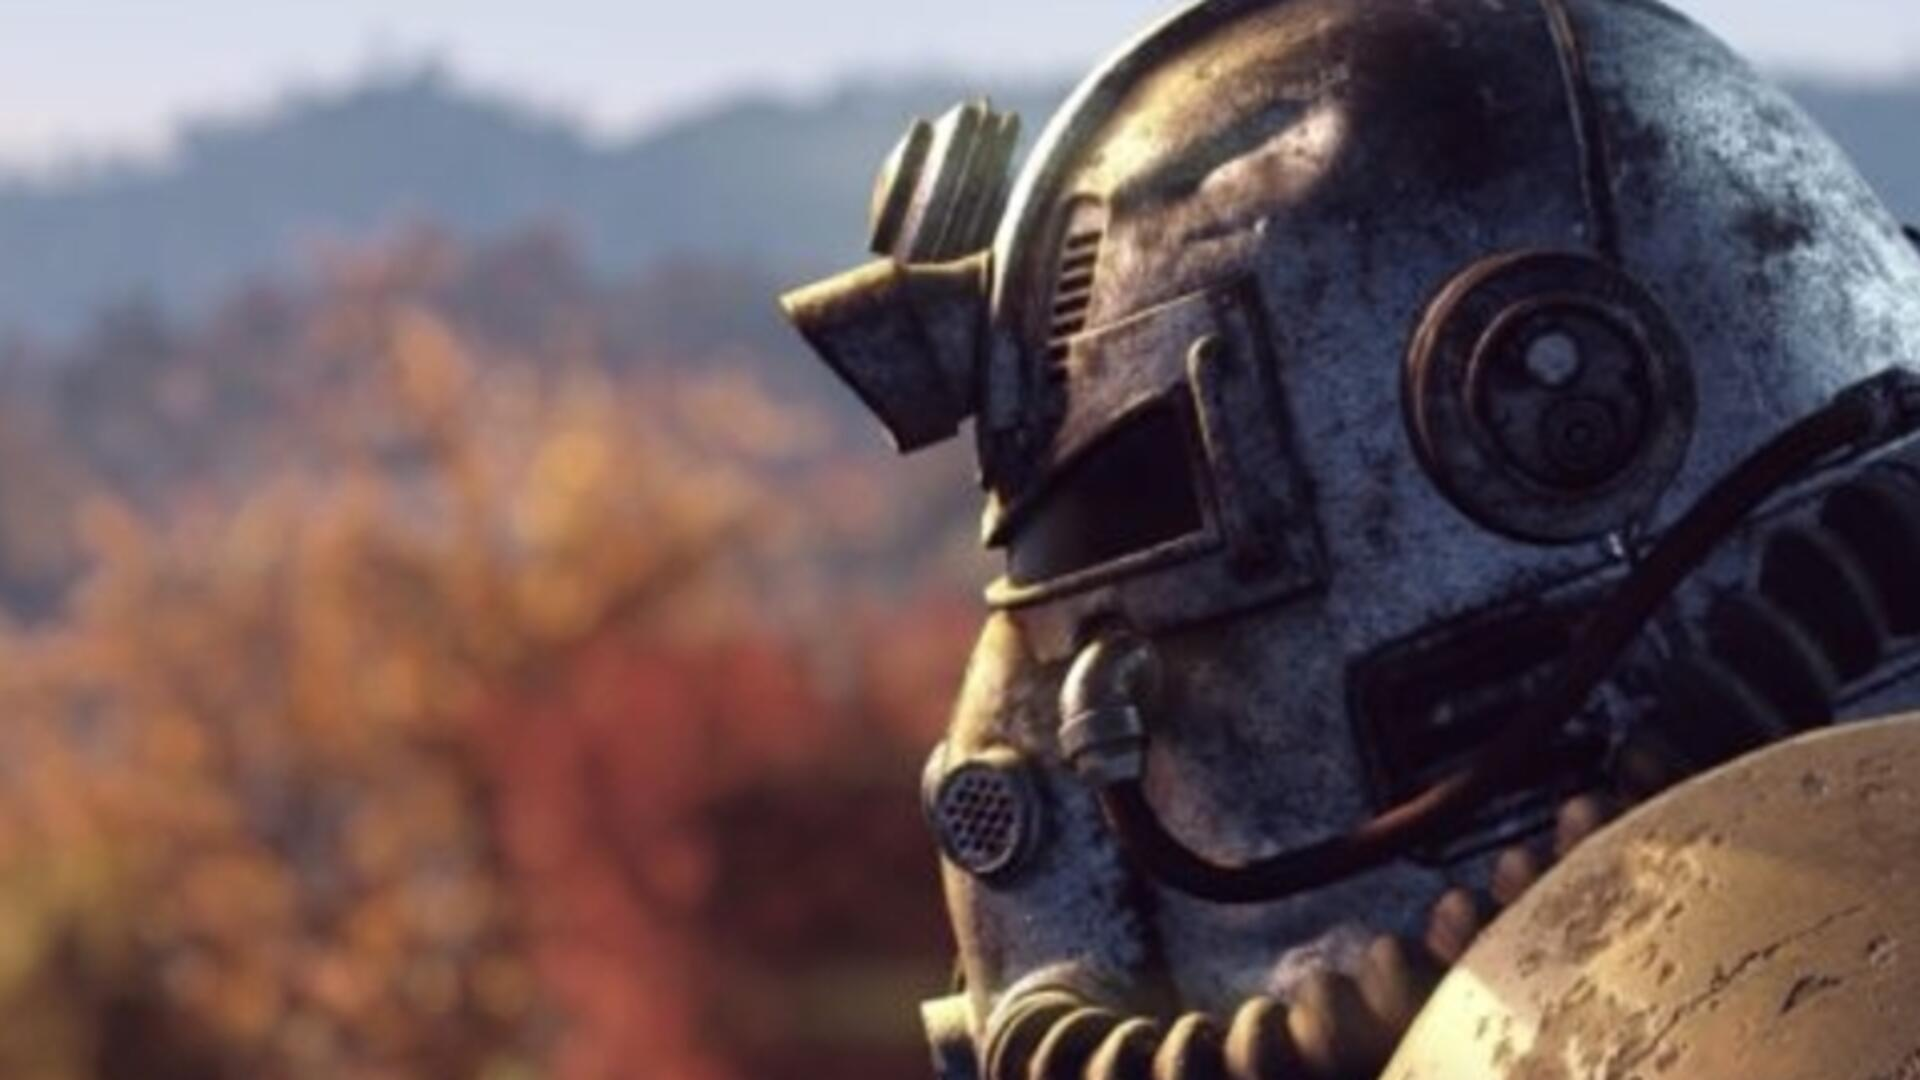 Hefty Fallout 76 Patch Clocks in at Nearly 50GB | USgamer